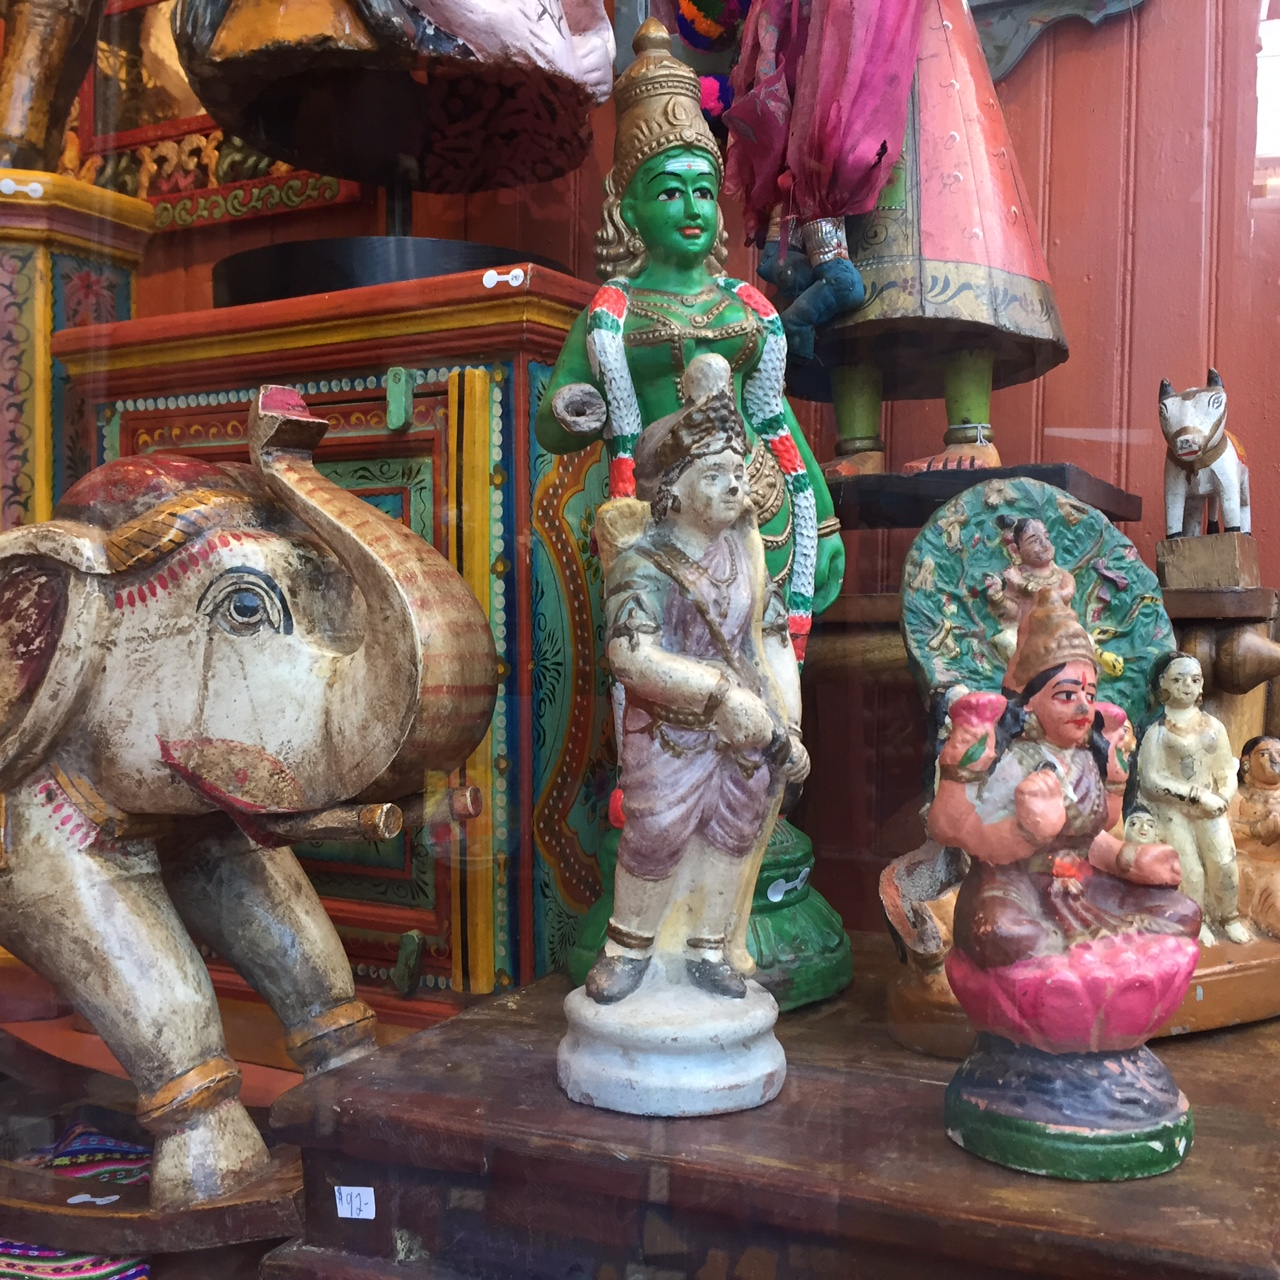 New Shipment of Vintage Indian Furniture and Home Decor